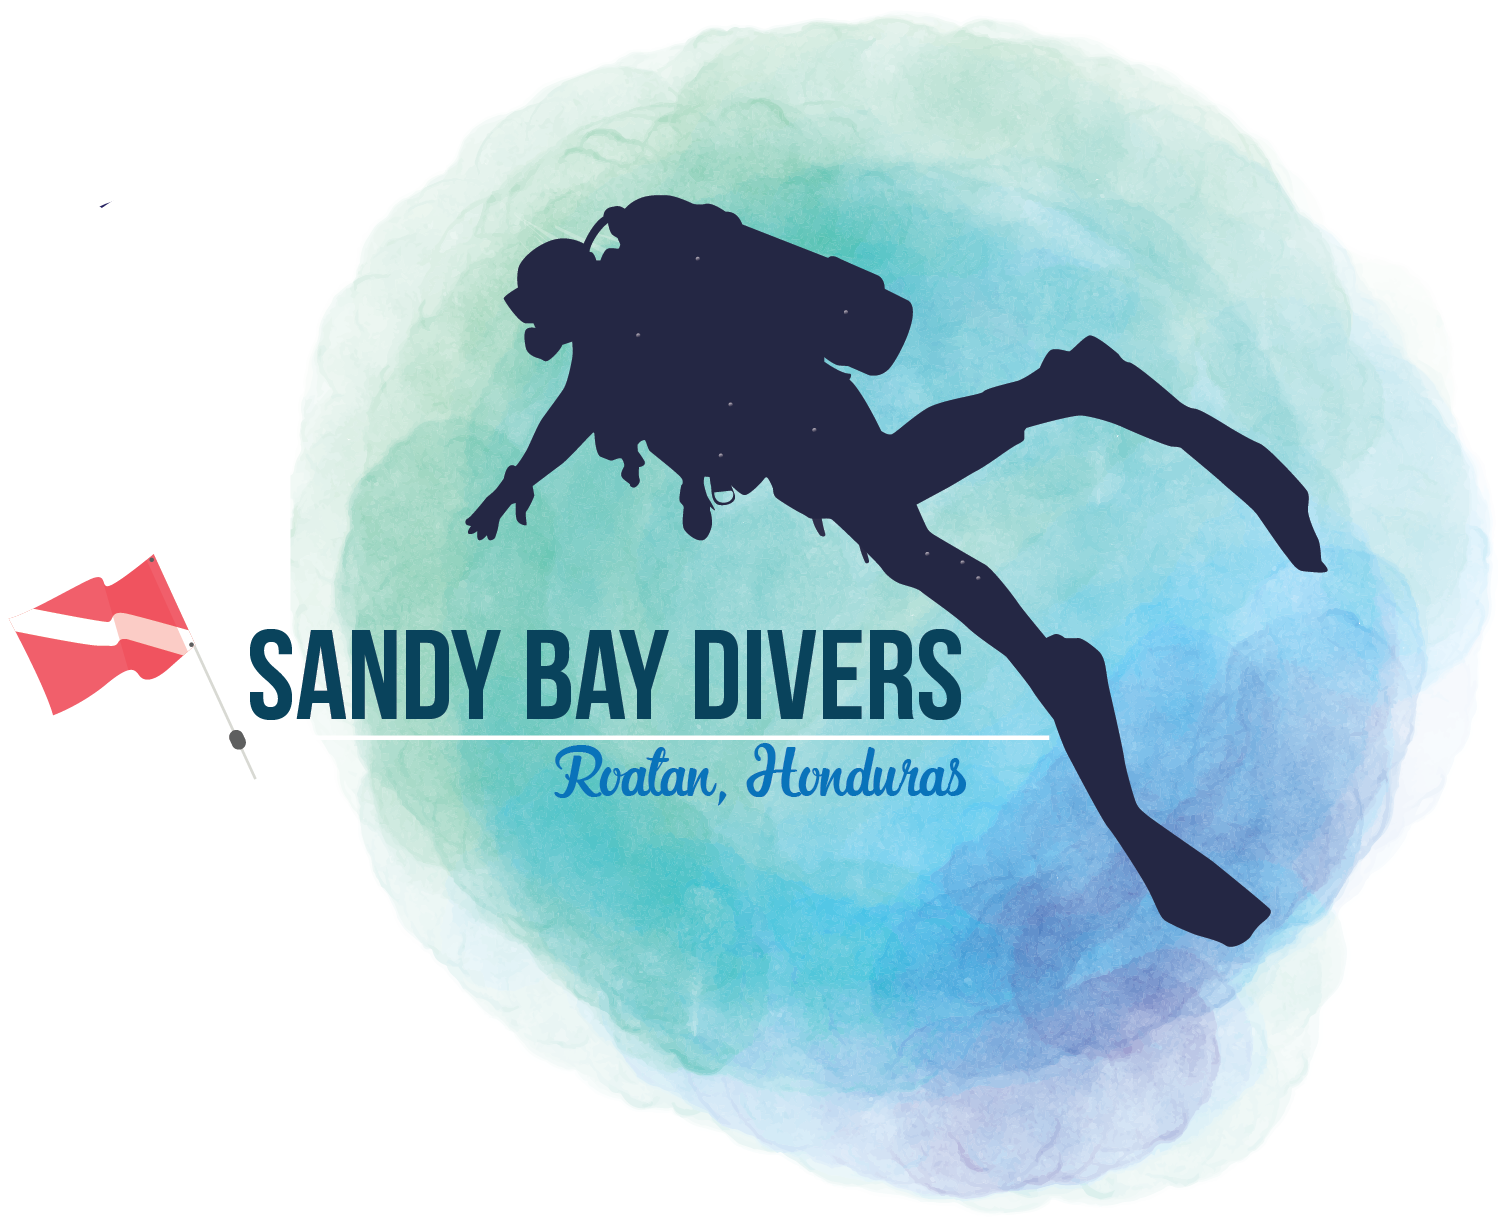 Sandy Bay Divers, Roatan